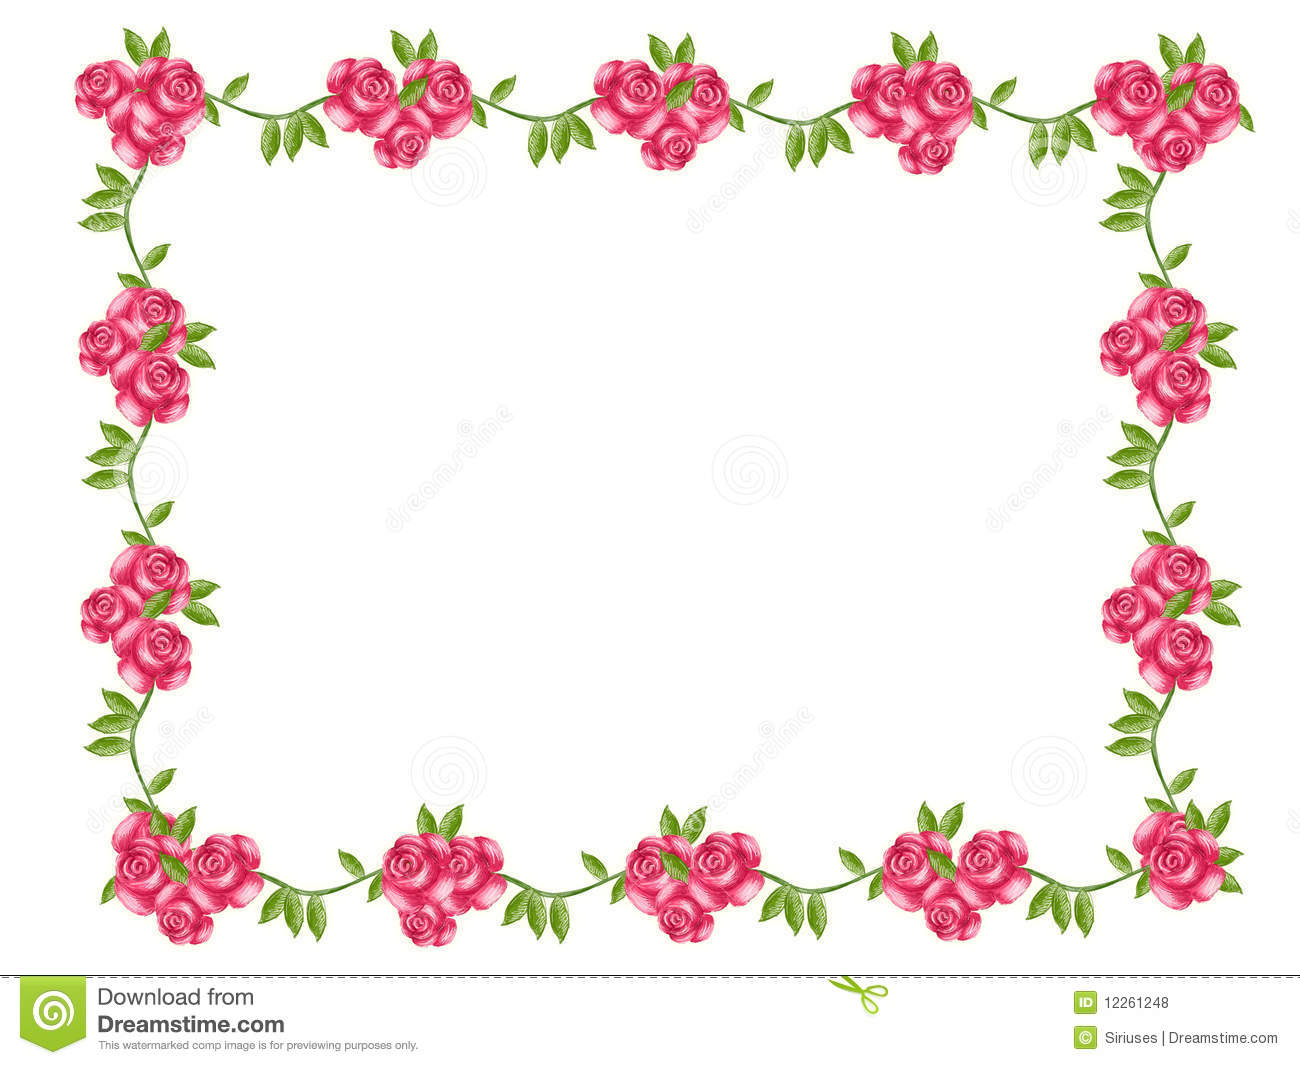 Romantic Designs Flower Frame Royalty Free Stock Photos Image 12261248